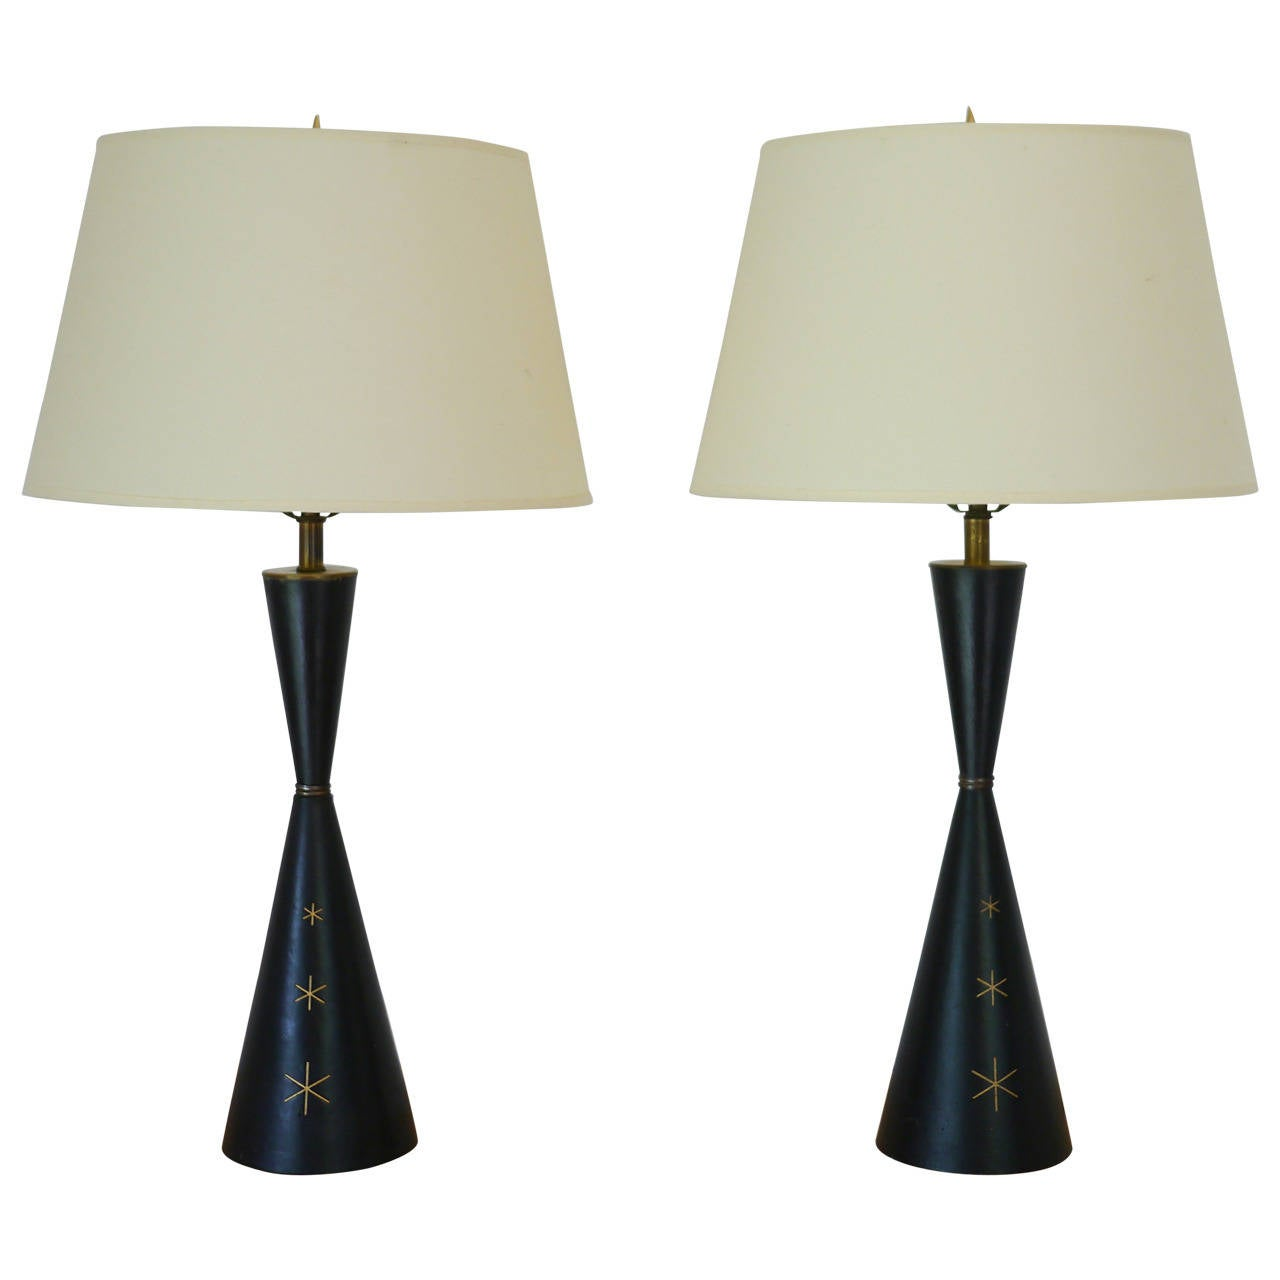 Elegant leather wrapped mid century lamps in the manner of tommi